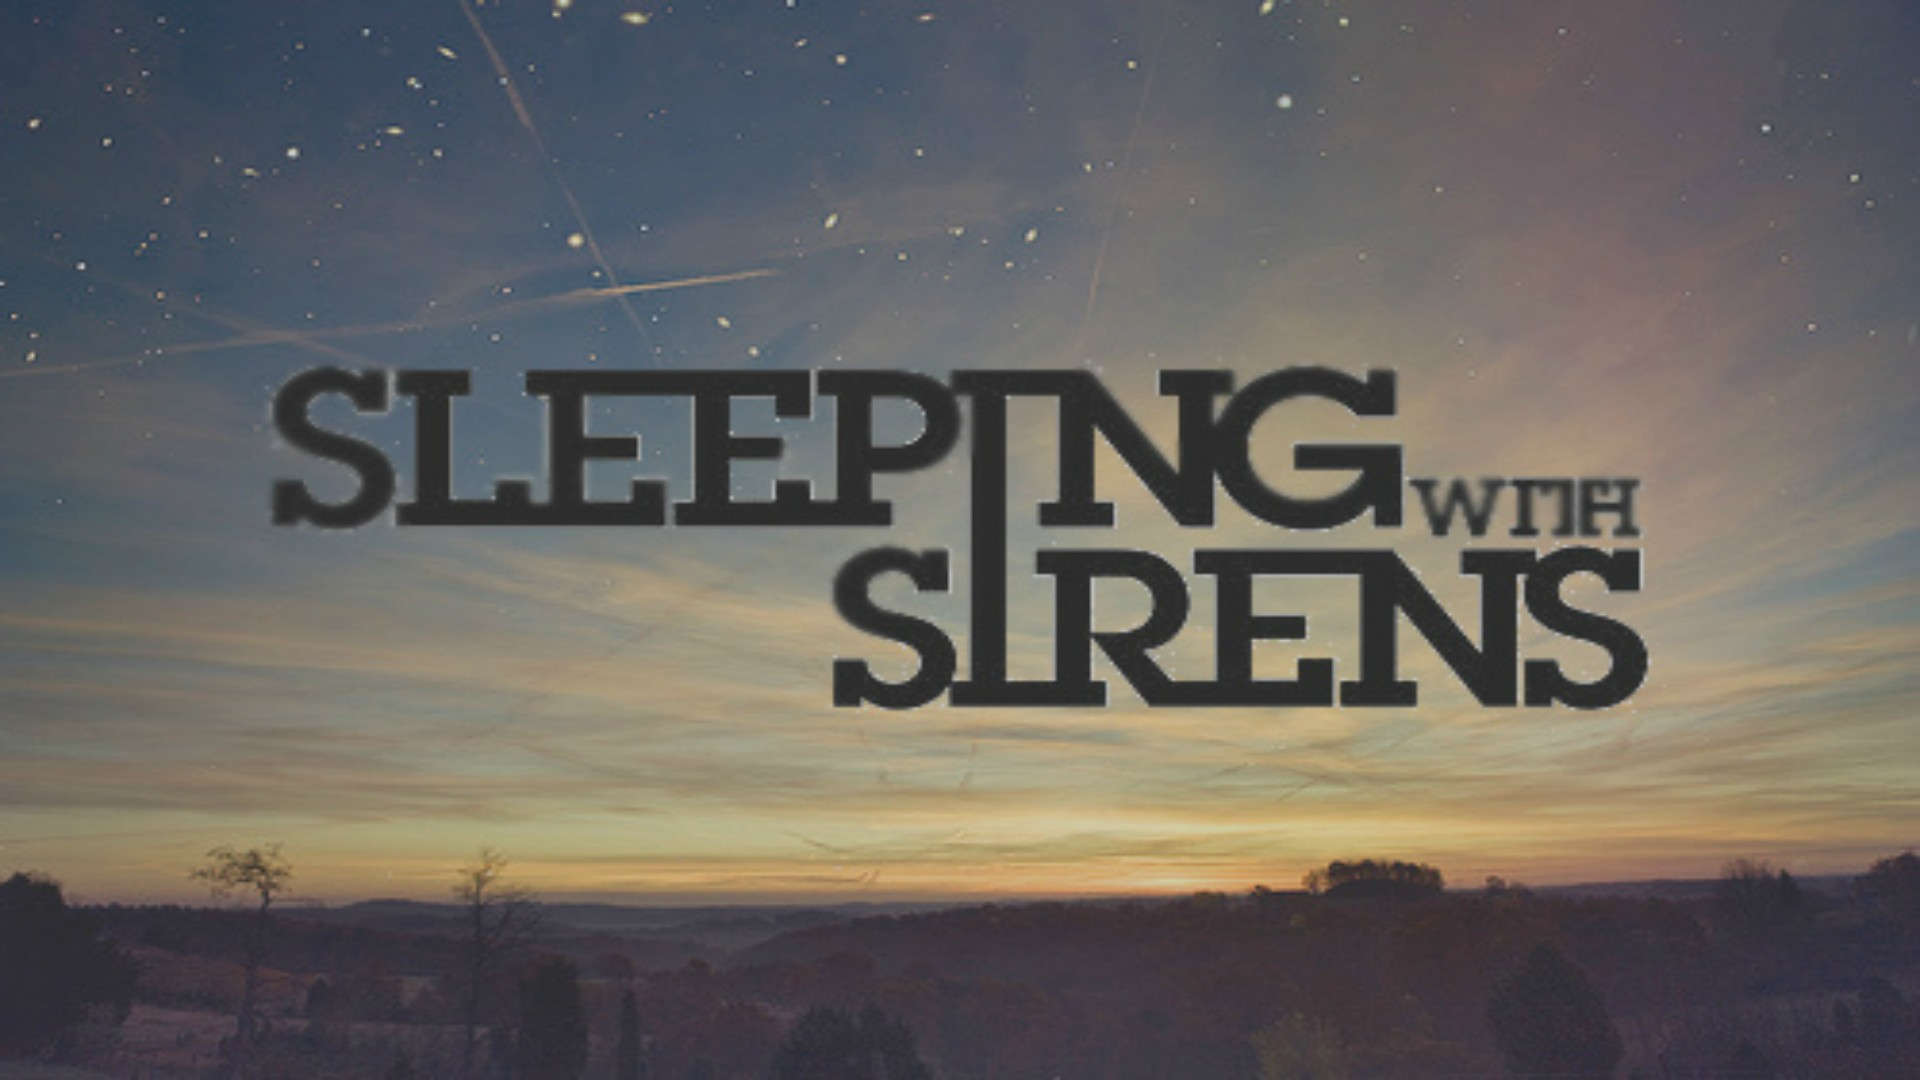 Viewing Gallery for Sleeping with Sirens Iphone Wallpaper 1920x1080px